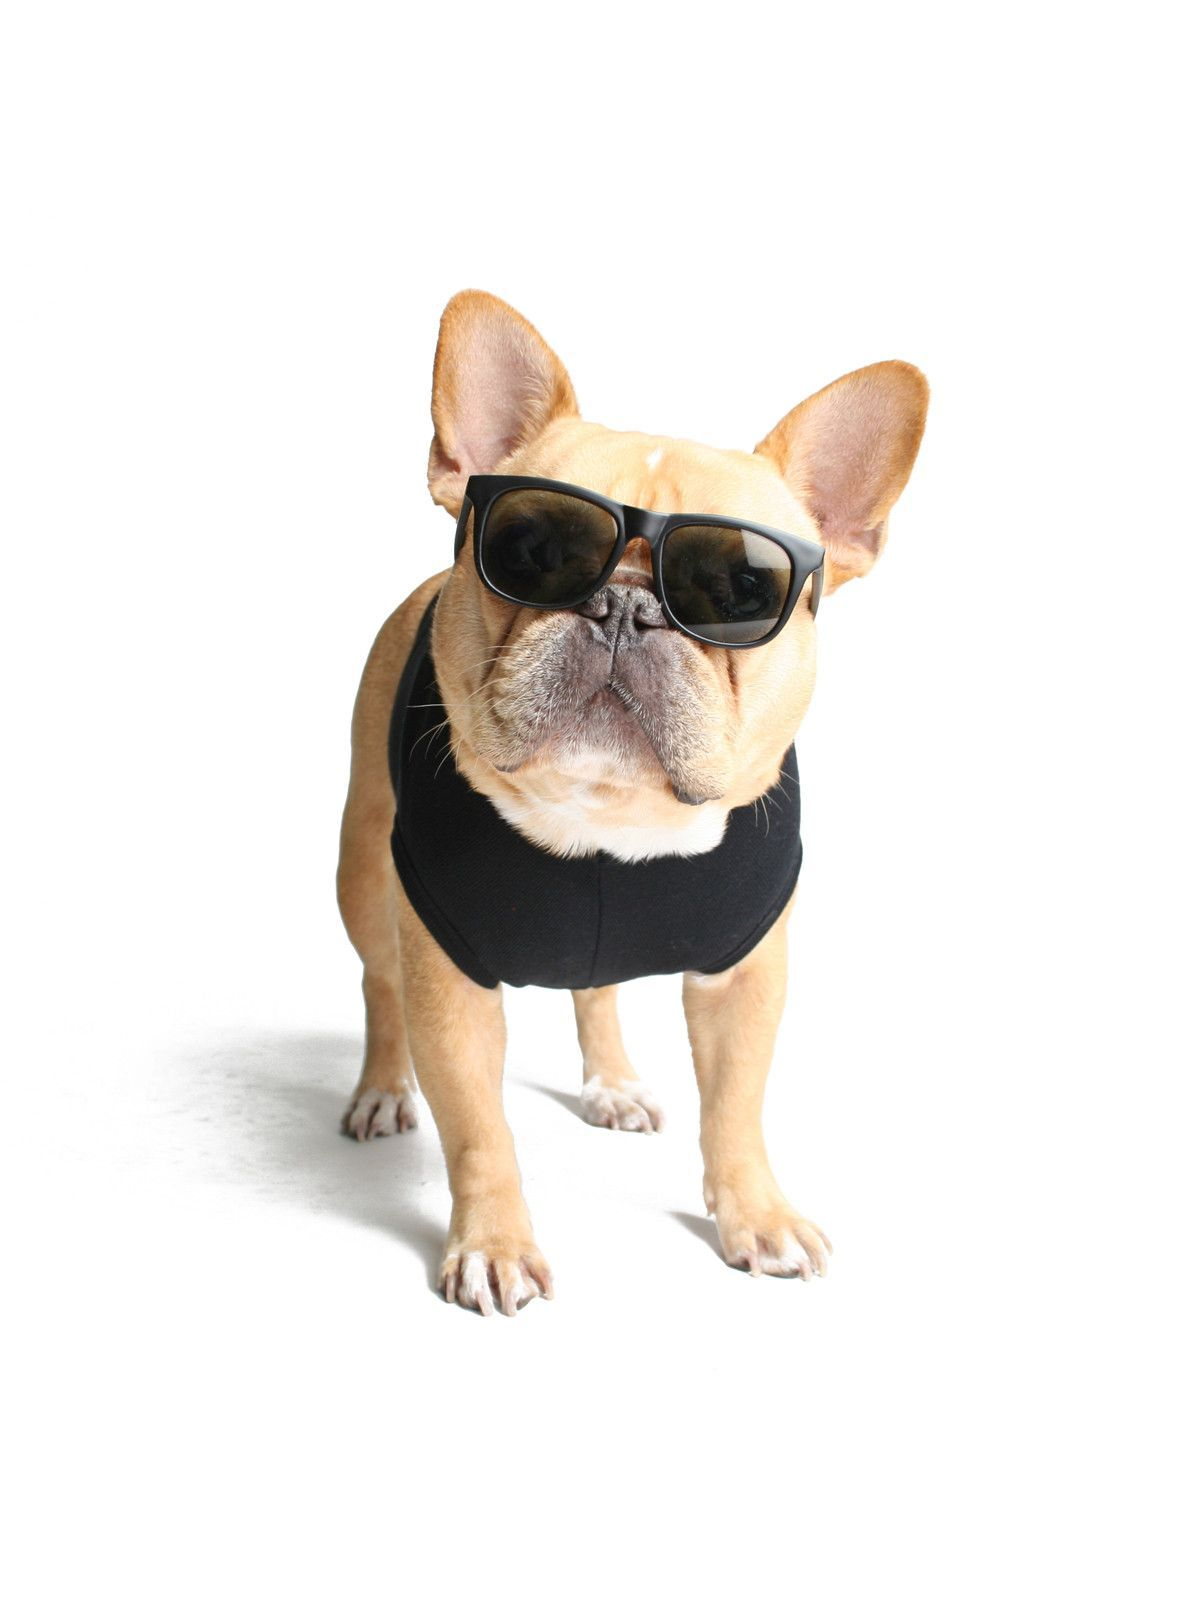 bdf2aa4709 IT DOESN T GET ANY BETTER THAN THIS. FINALLY A PAIR OF SUNGLASSES THAT FIT  THE PETITE FRENCHIE HEAD. ULTRA-COOL BLACK WAYFARER SUNGLASSES PERFECT FOR  ...